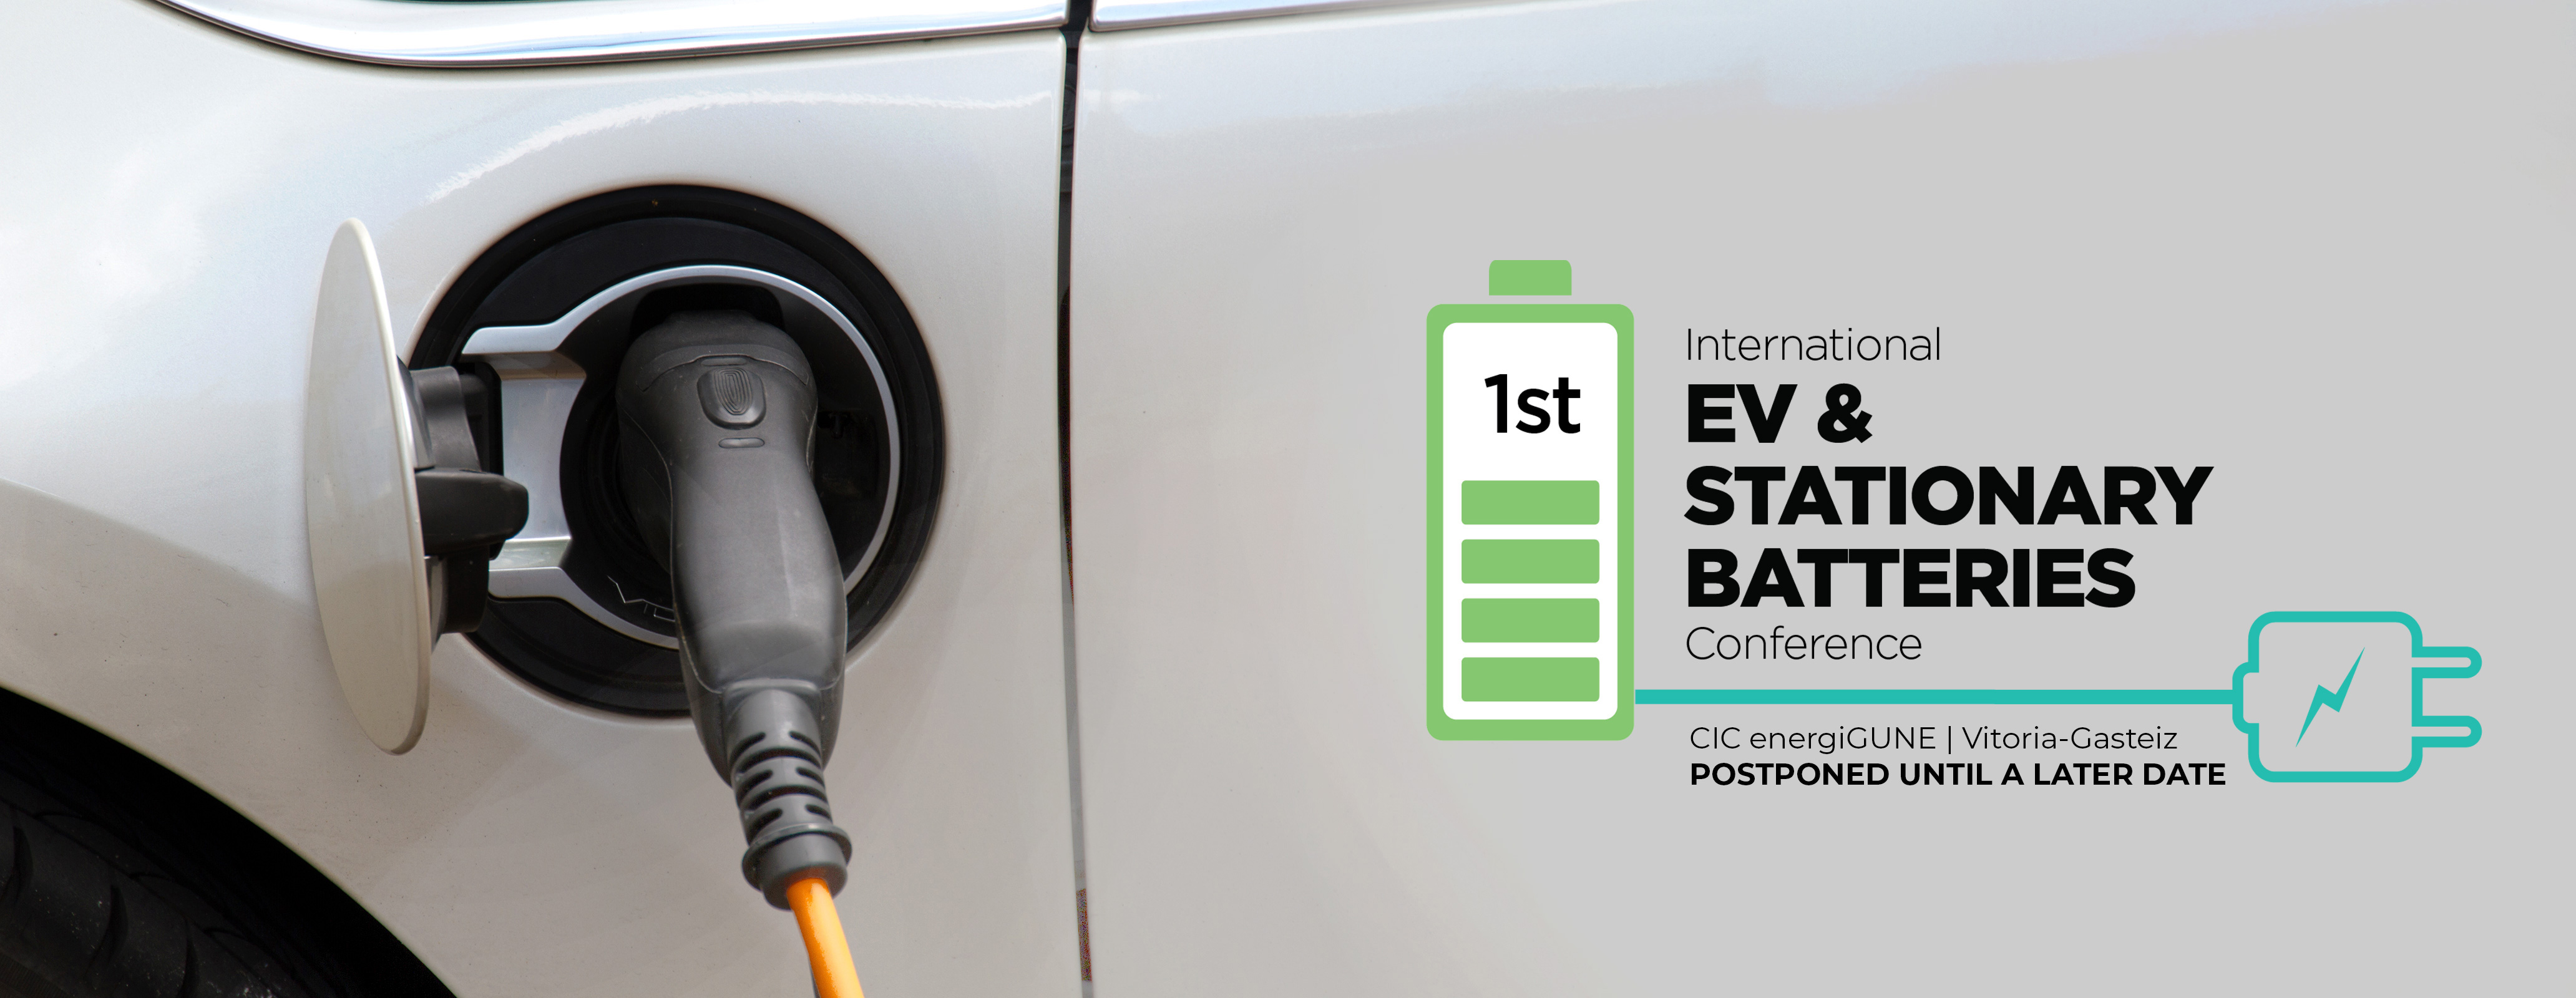 First international electrical vehicle & stationary battery conference 2020